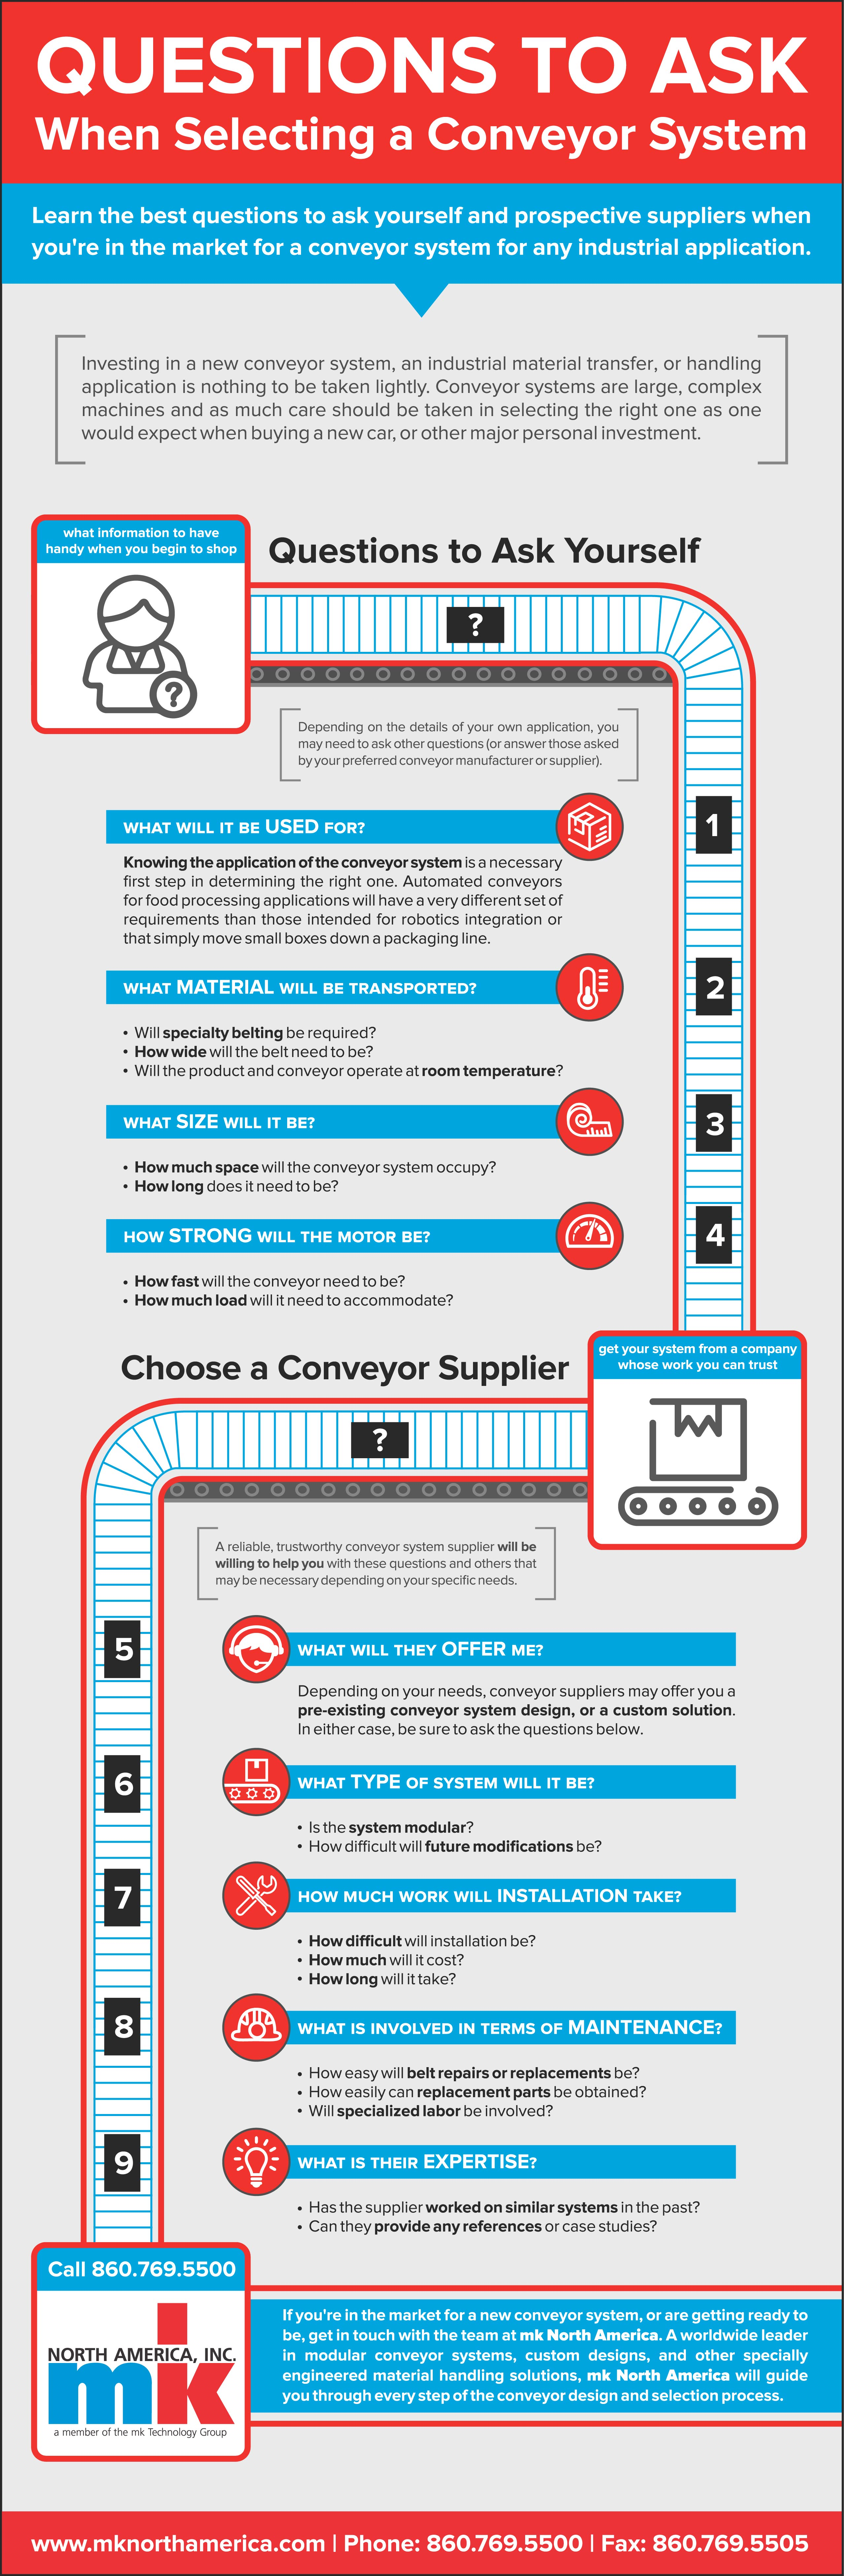 questions to ask when selecting a conveyor system infographic questions to ask when selecting a conveyor system